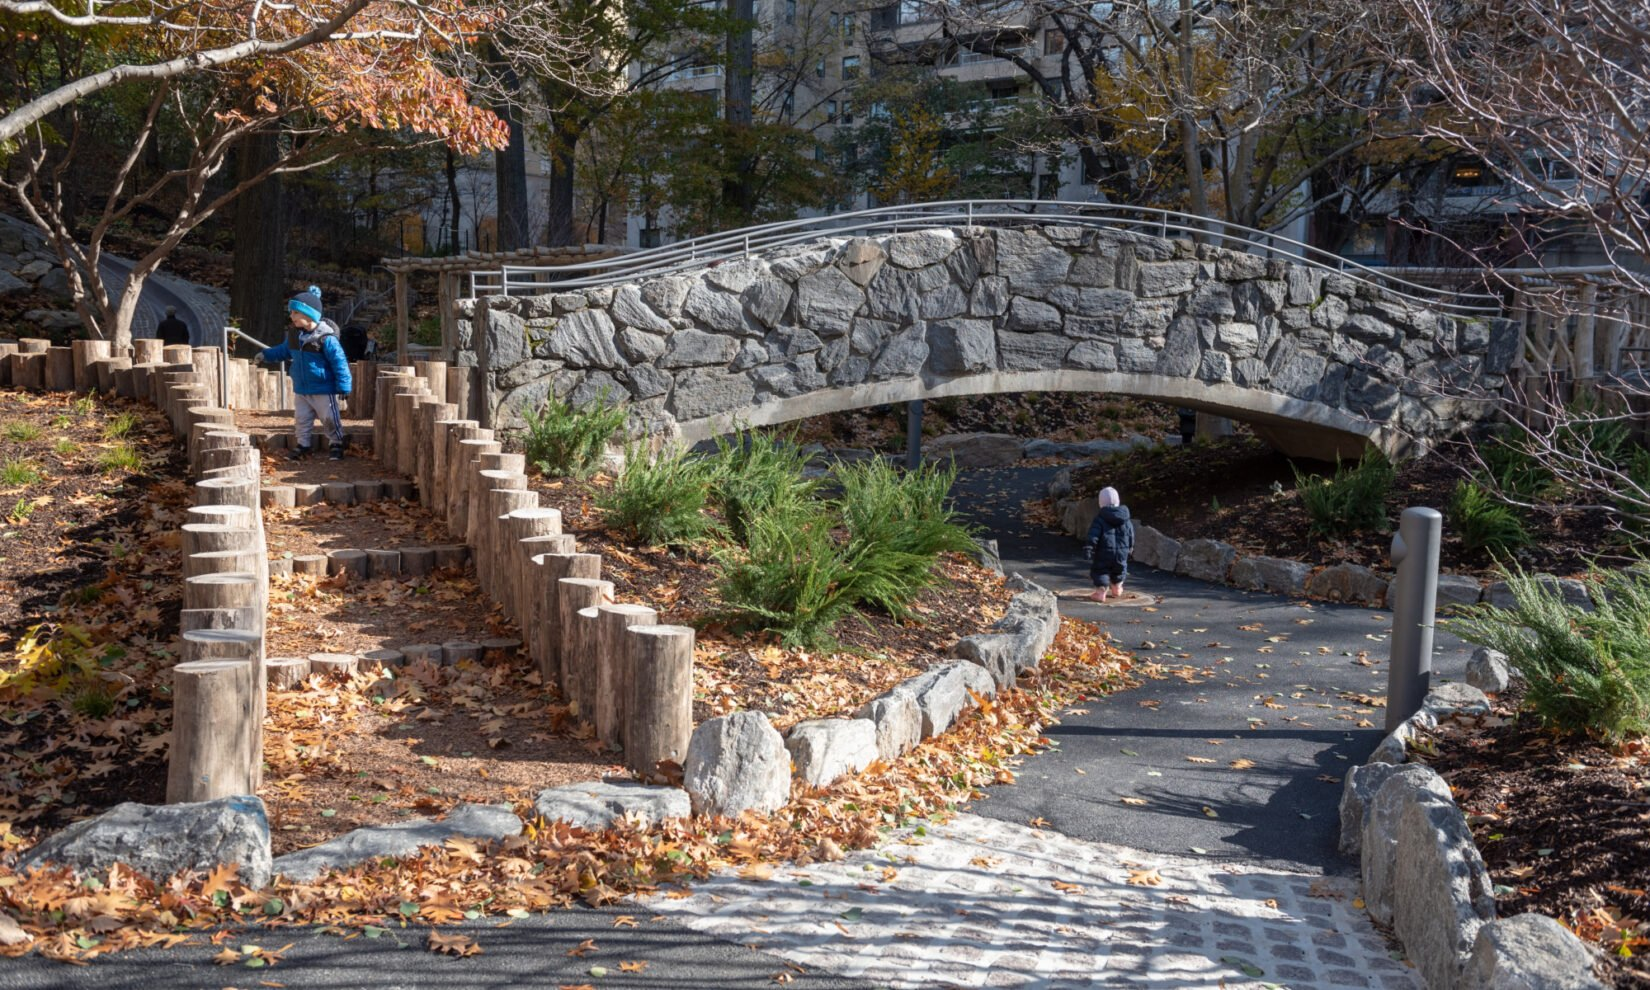 Rustic steps and a stone bridge are highlights of the playground.